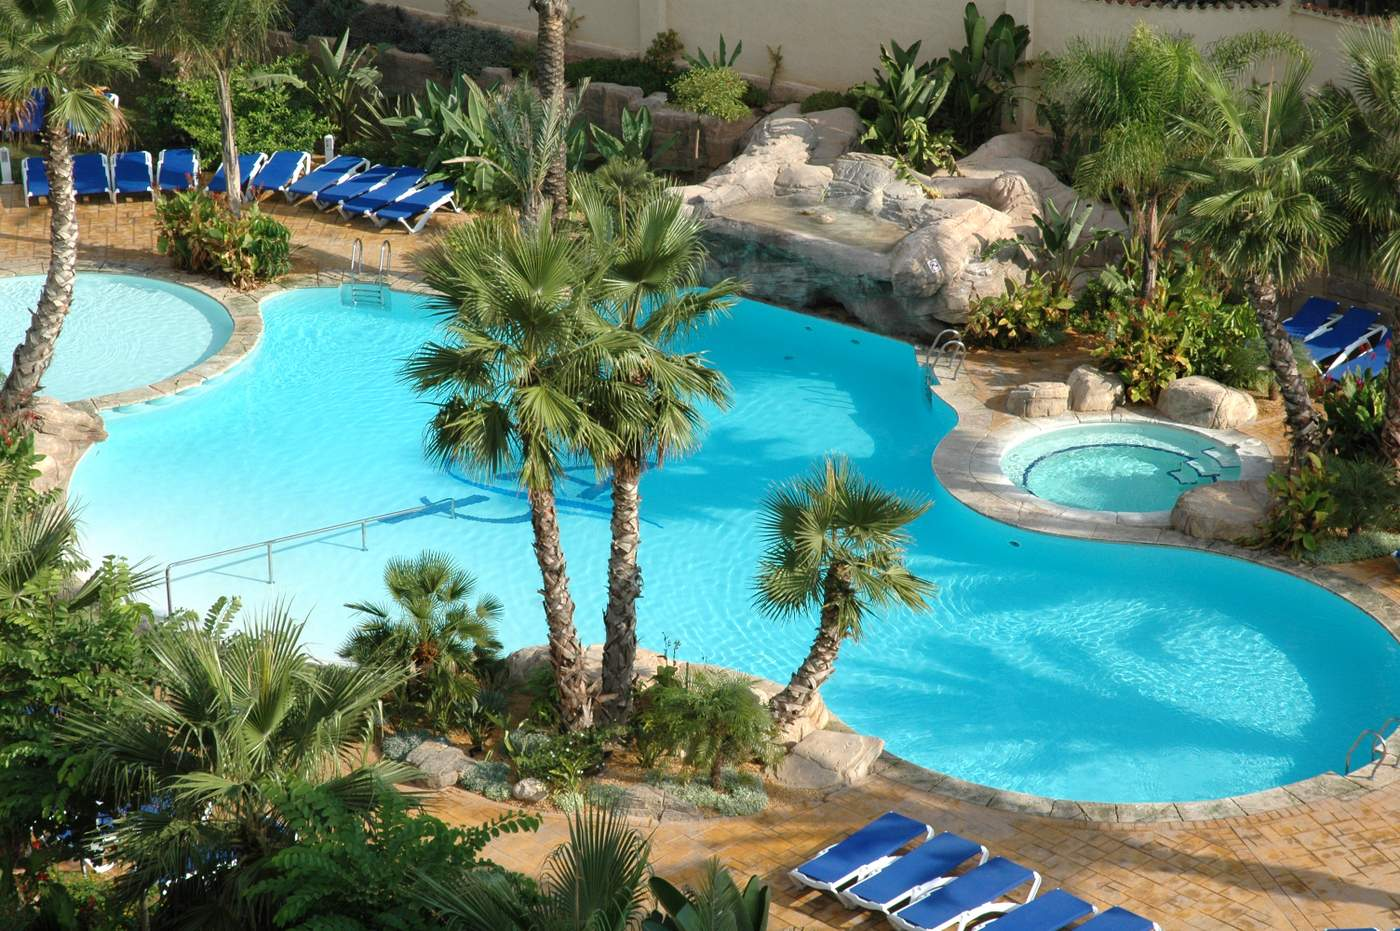 The 4 star Albir Playa swimming pool